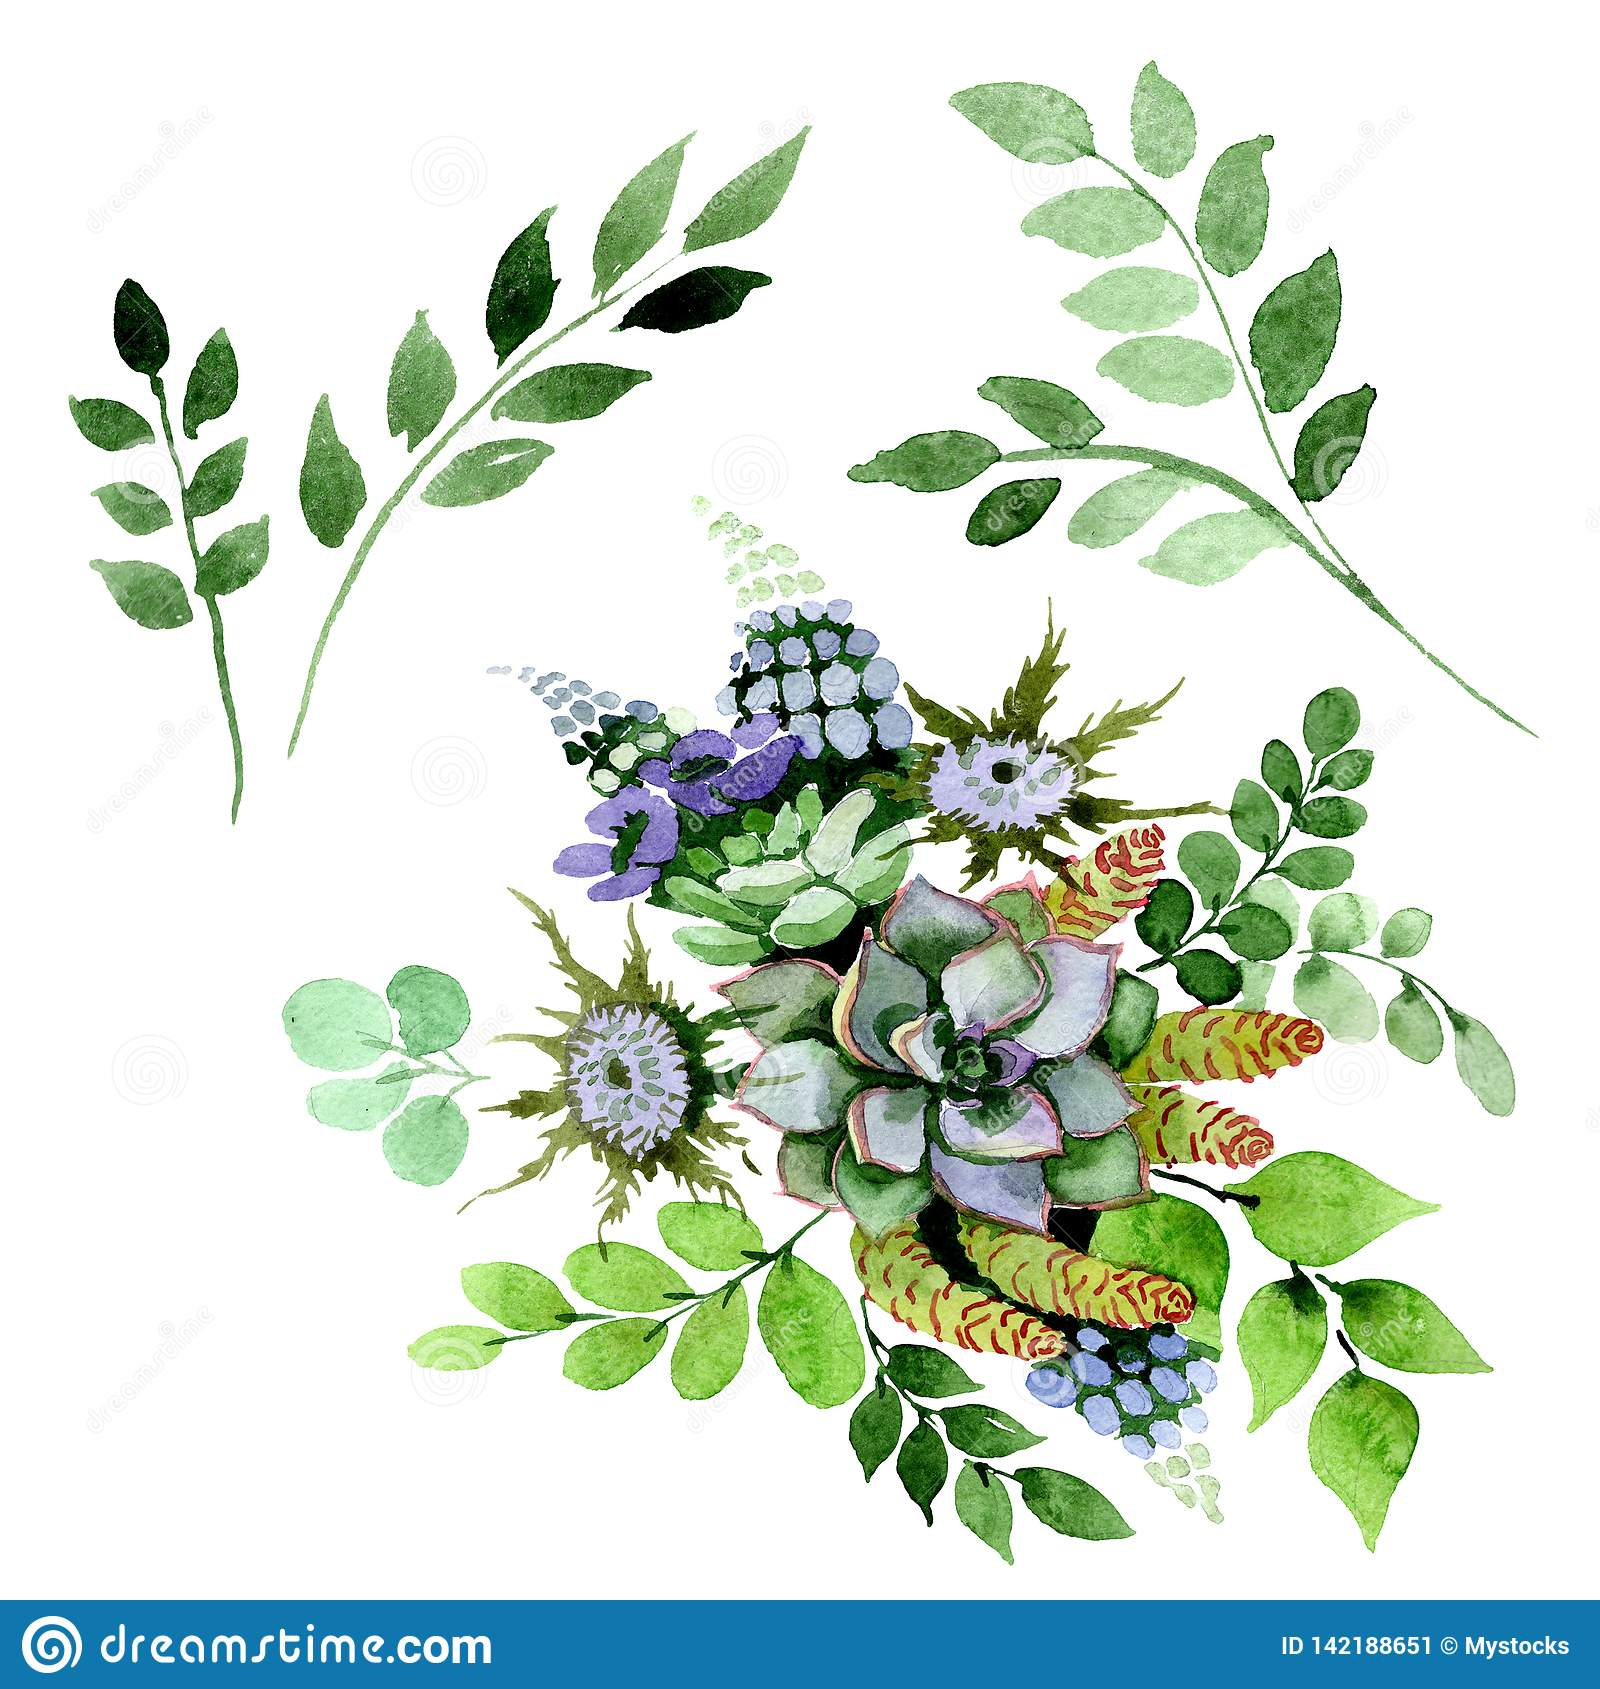 Succulent Bouquet Floral Botanical Flowers Watercolor Background Illustration Set Isolated Succulents Element Stock Illustration Illustration Of Isolated Hand 142188651